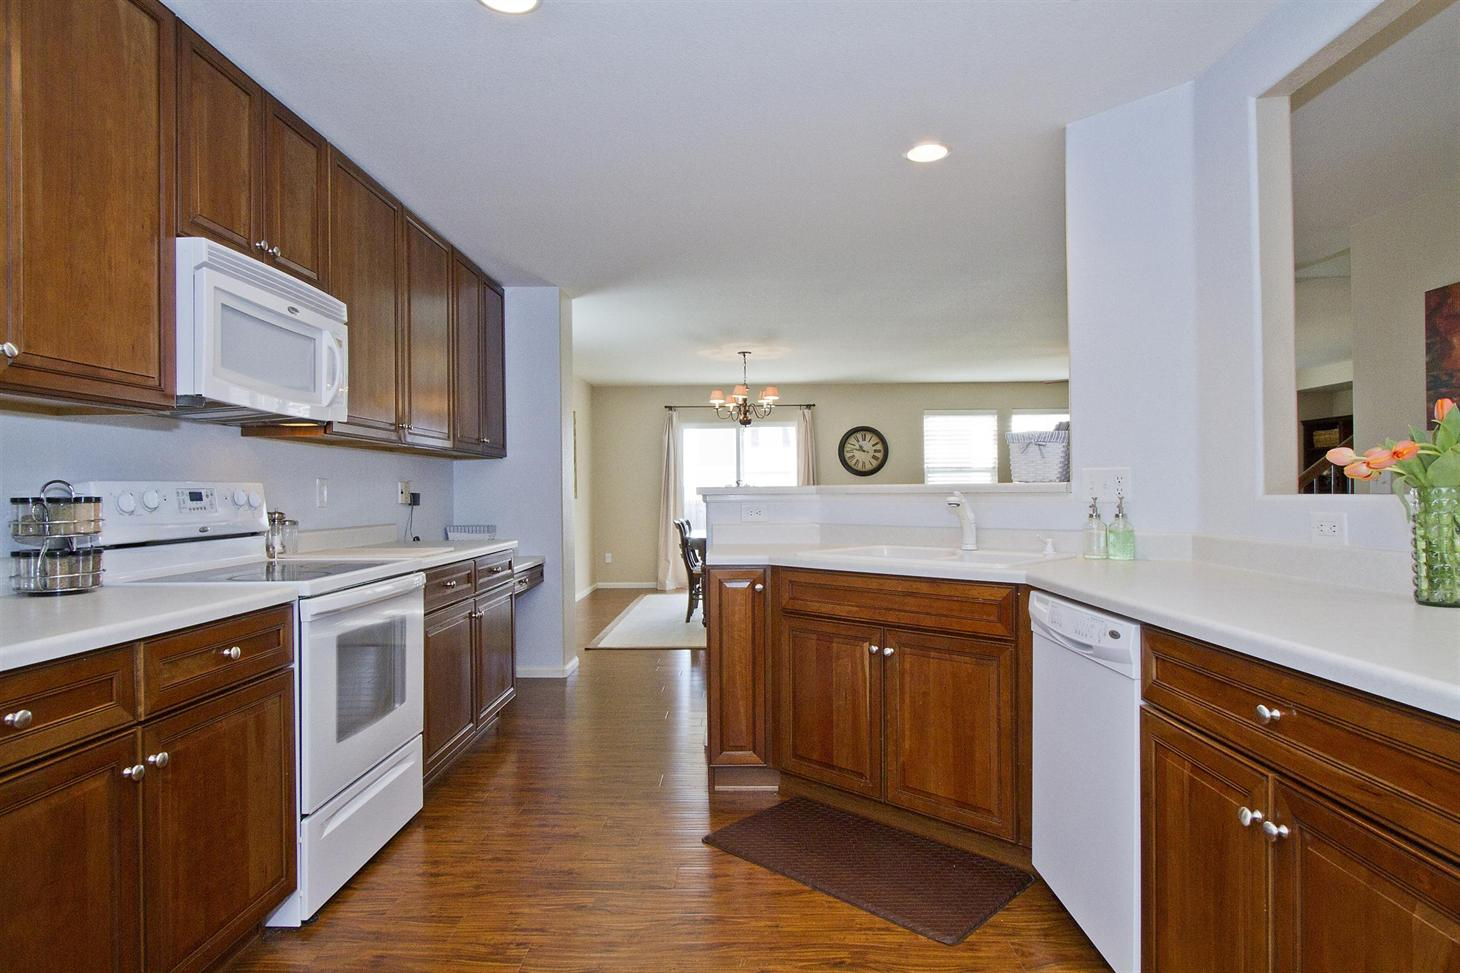 Uncategorized Kitchen Appliances Brighton brighton east farms 4788 spinning wheel dr co 80601 super cleanlarge open kitchengreat room3 bed3 bath plus large loft easily converted to 4th bedroomfront back covered pati